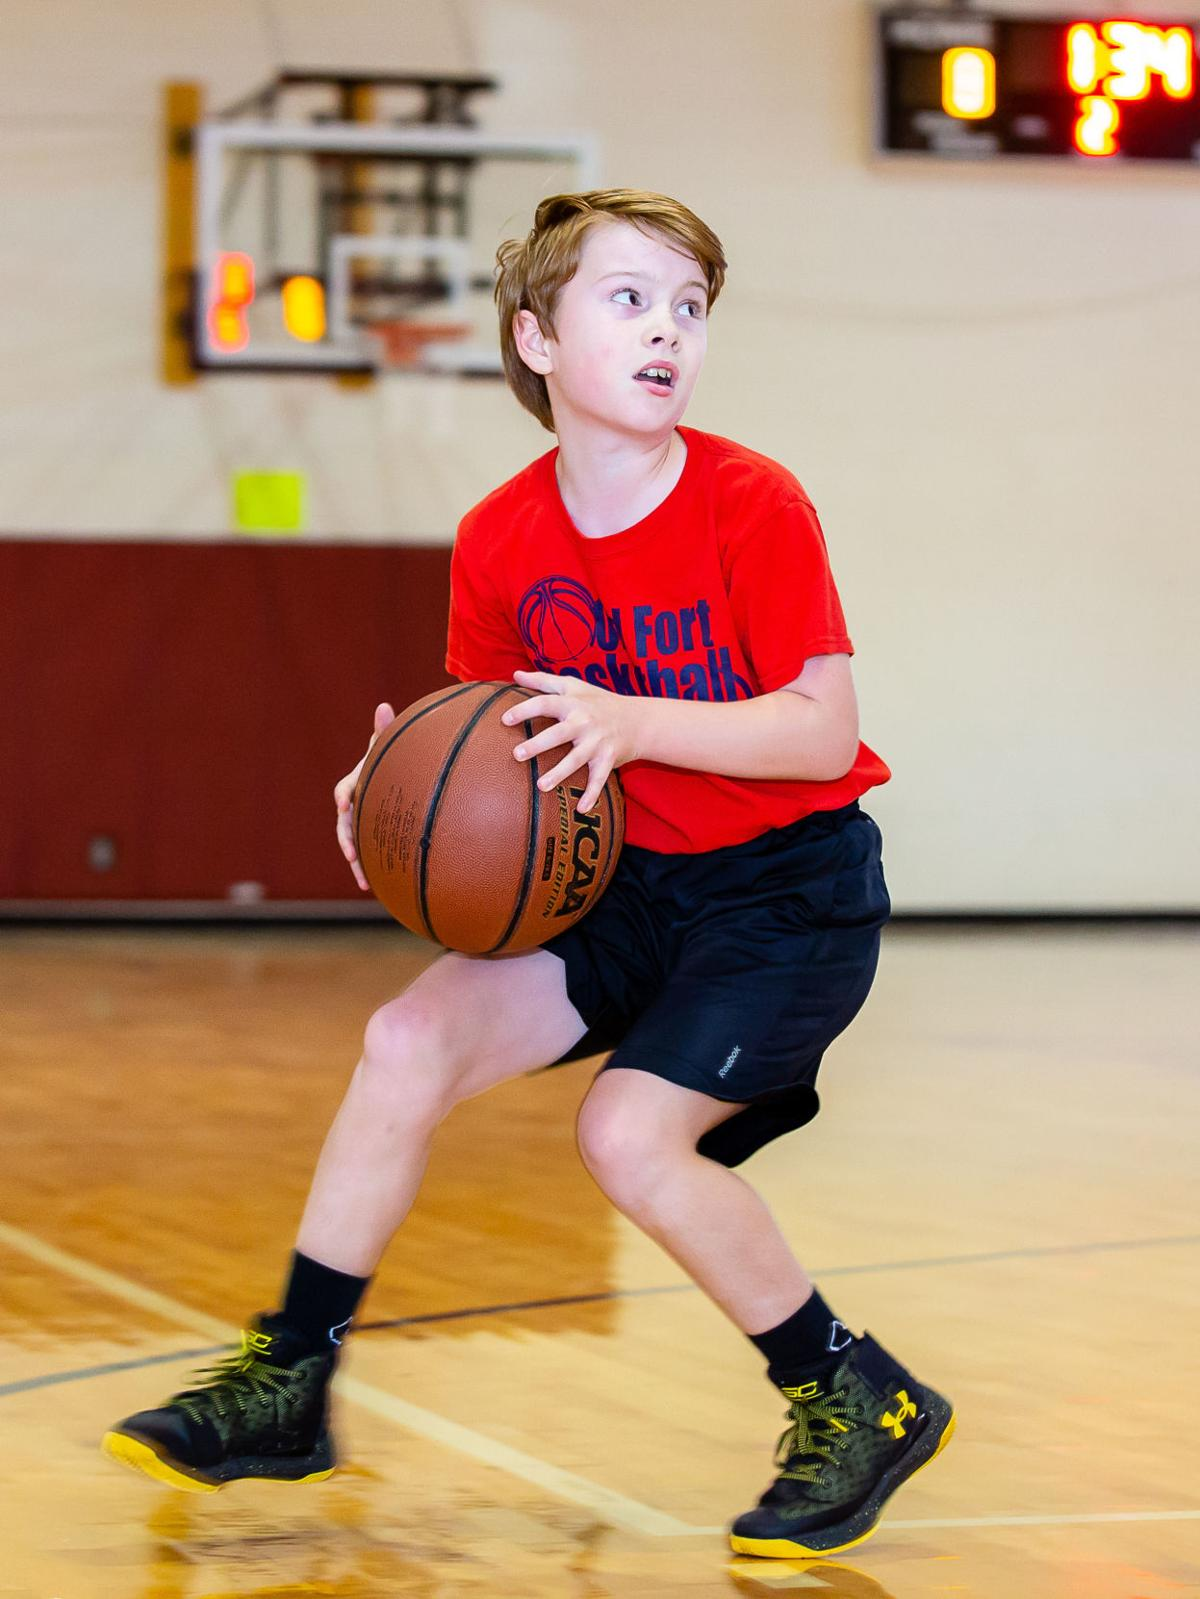 28 sports-youth sports photo page2.jpg